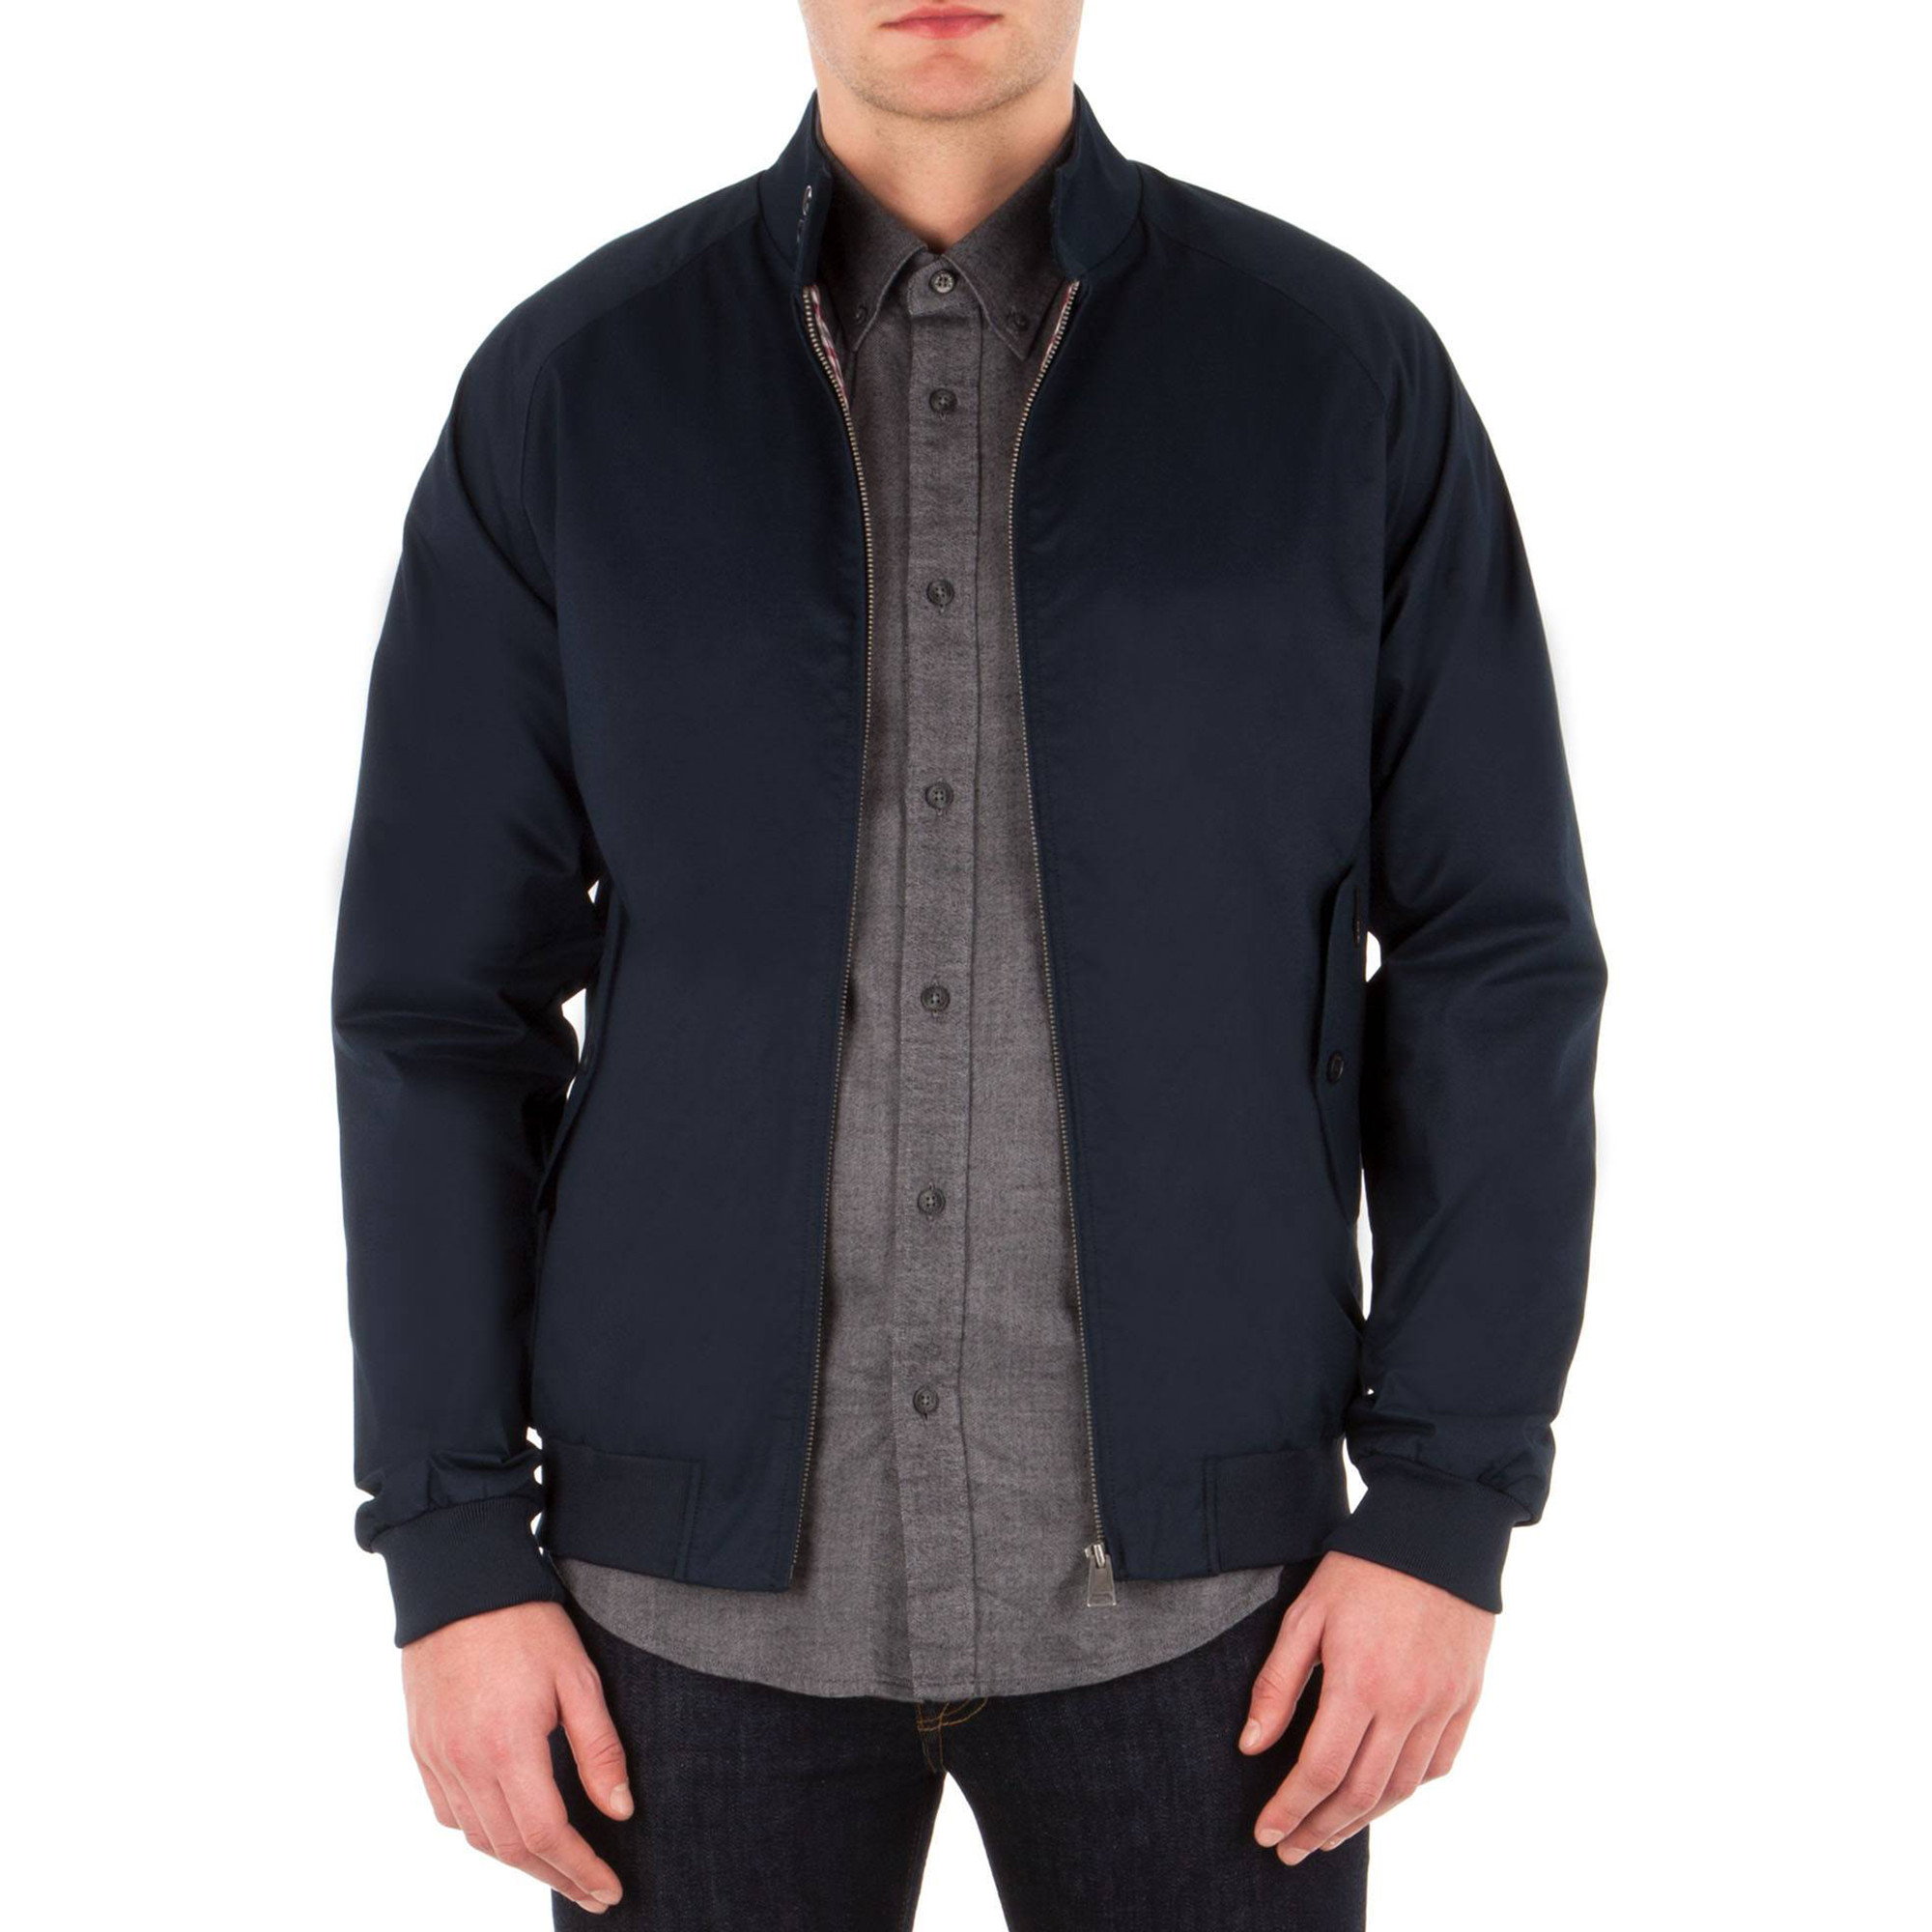 ben sherman harrington jacket navy jean scene. Black Bedroom Furniture Sets. Home Design Ideas